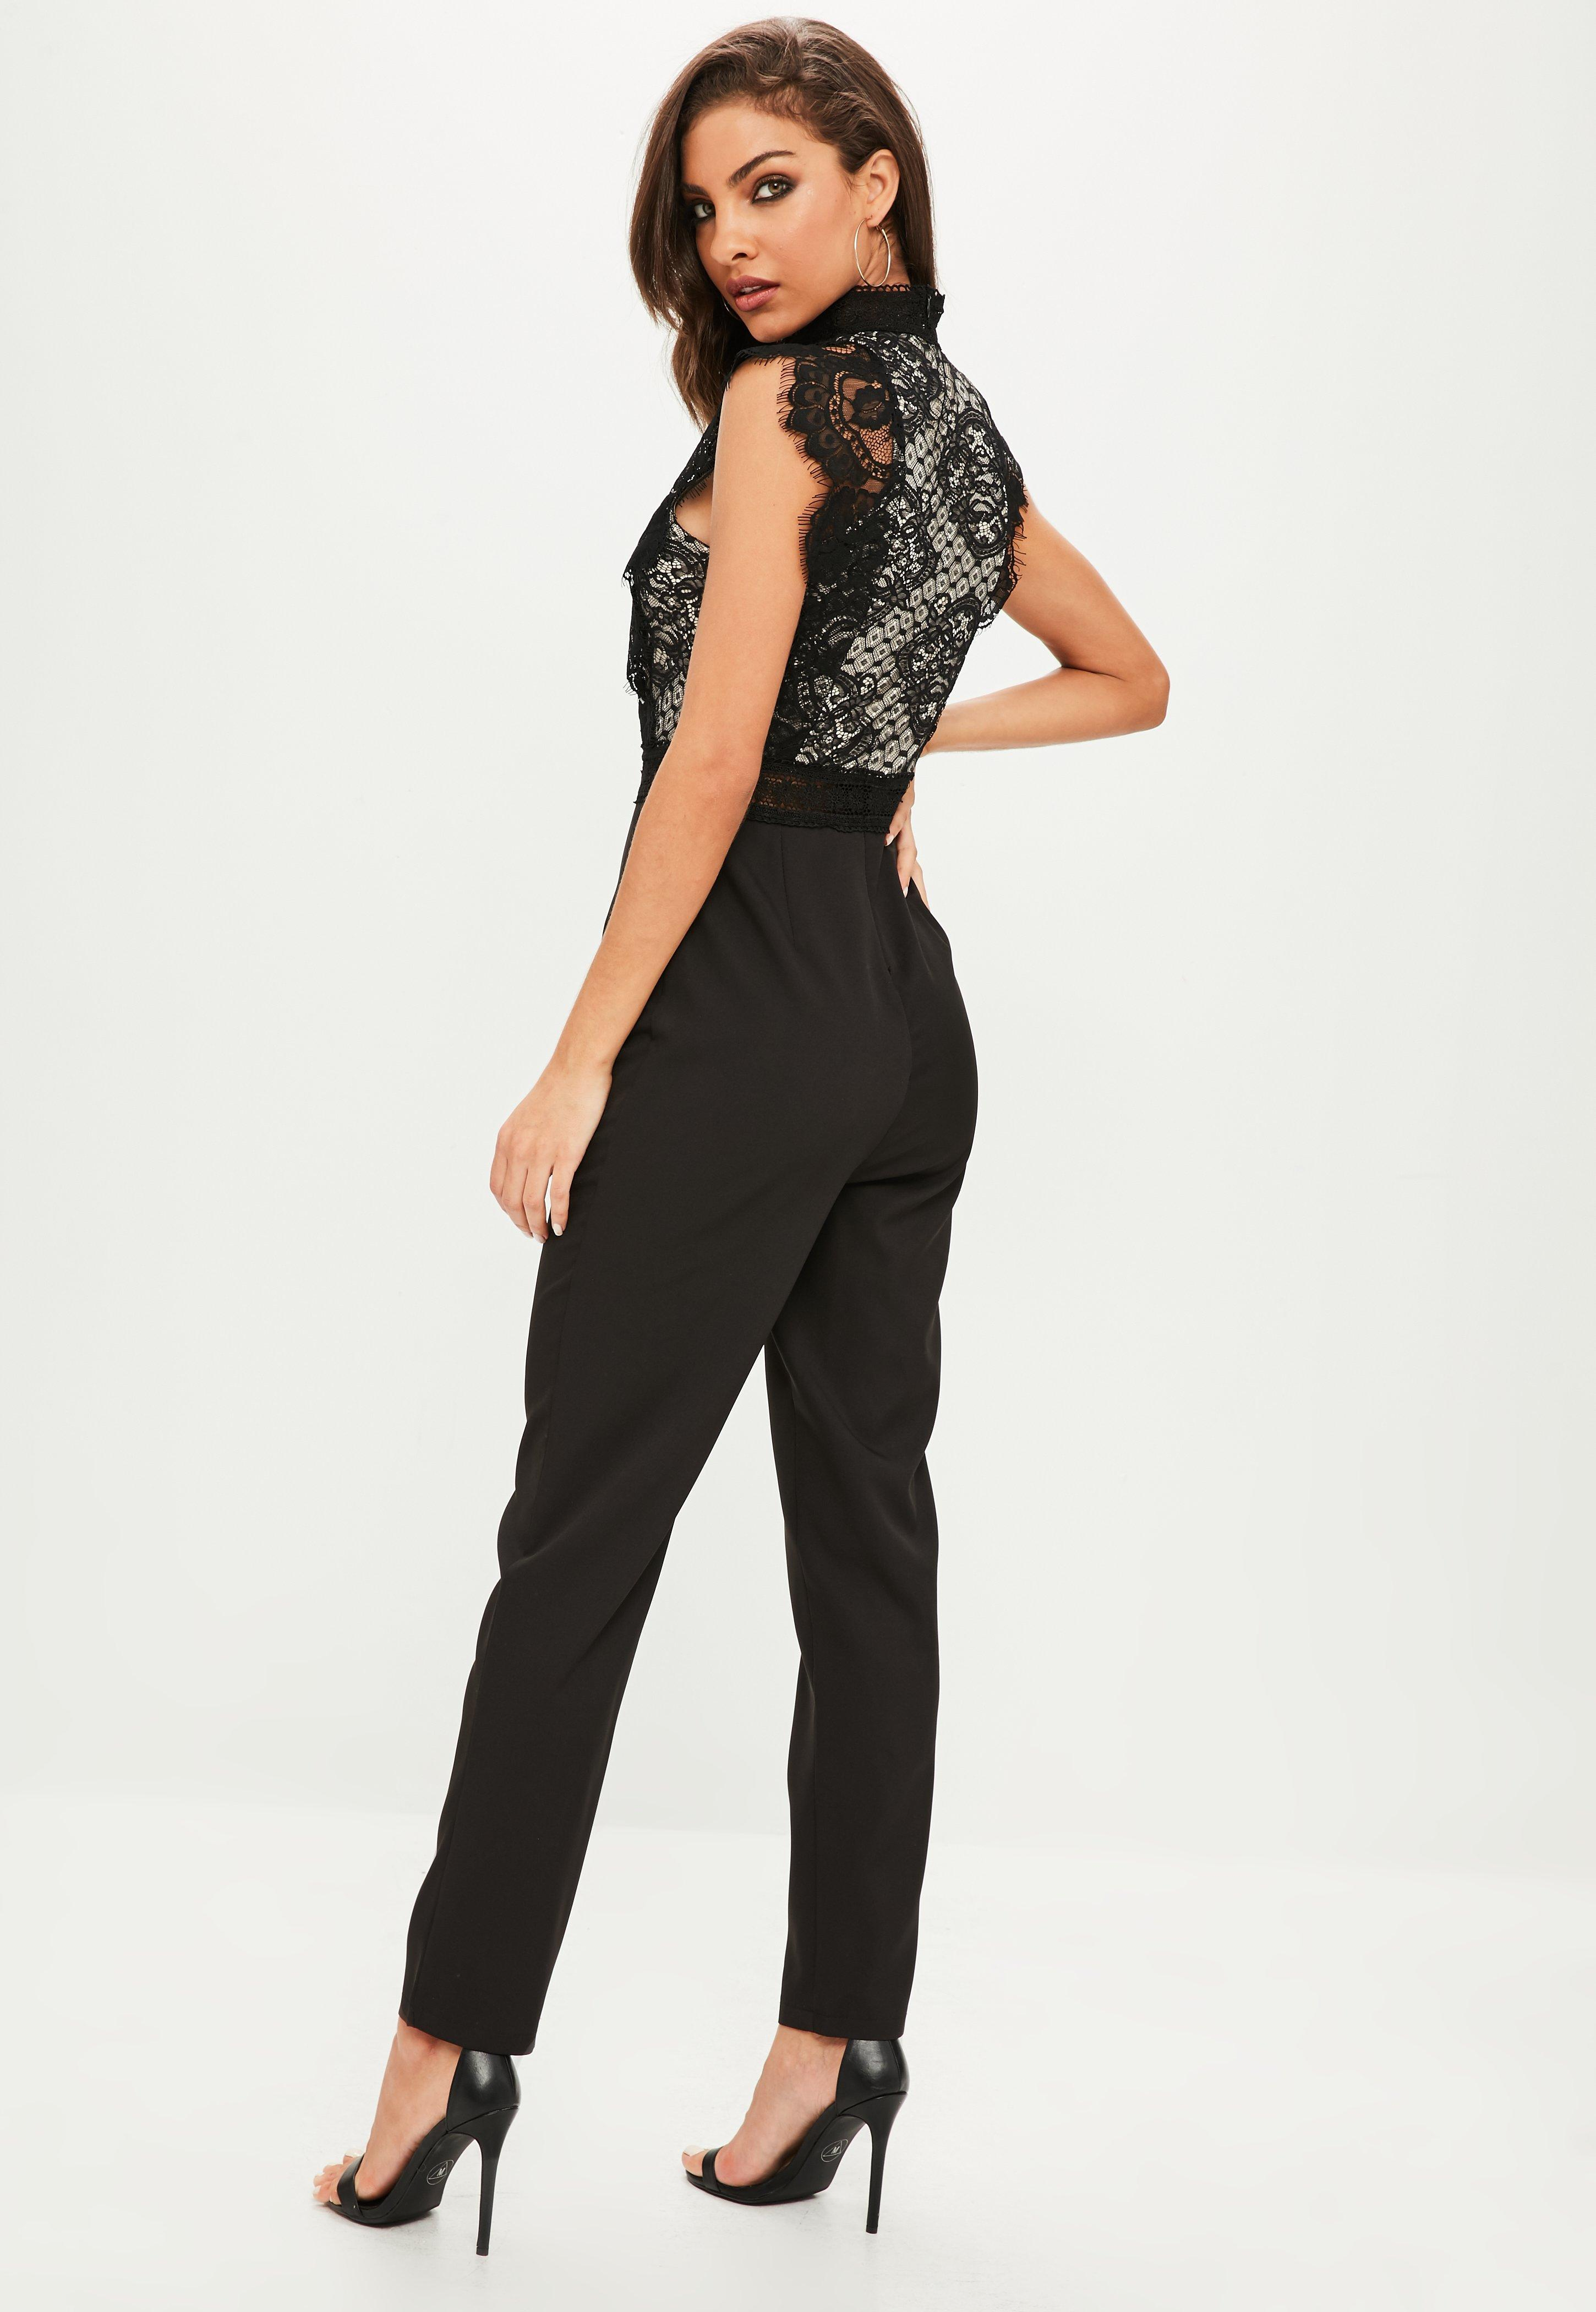 41496d2e74f5 Lyst - Missguided Black Eyelash Lace High Neck Jumpsuit in Black